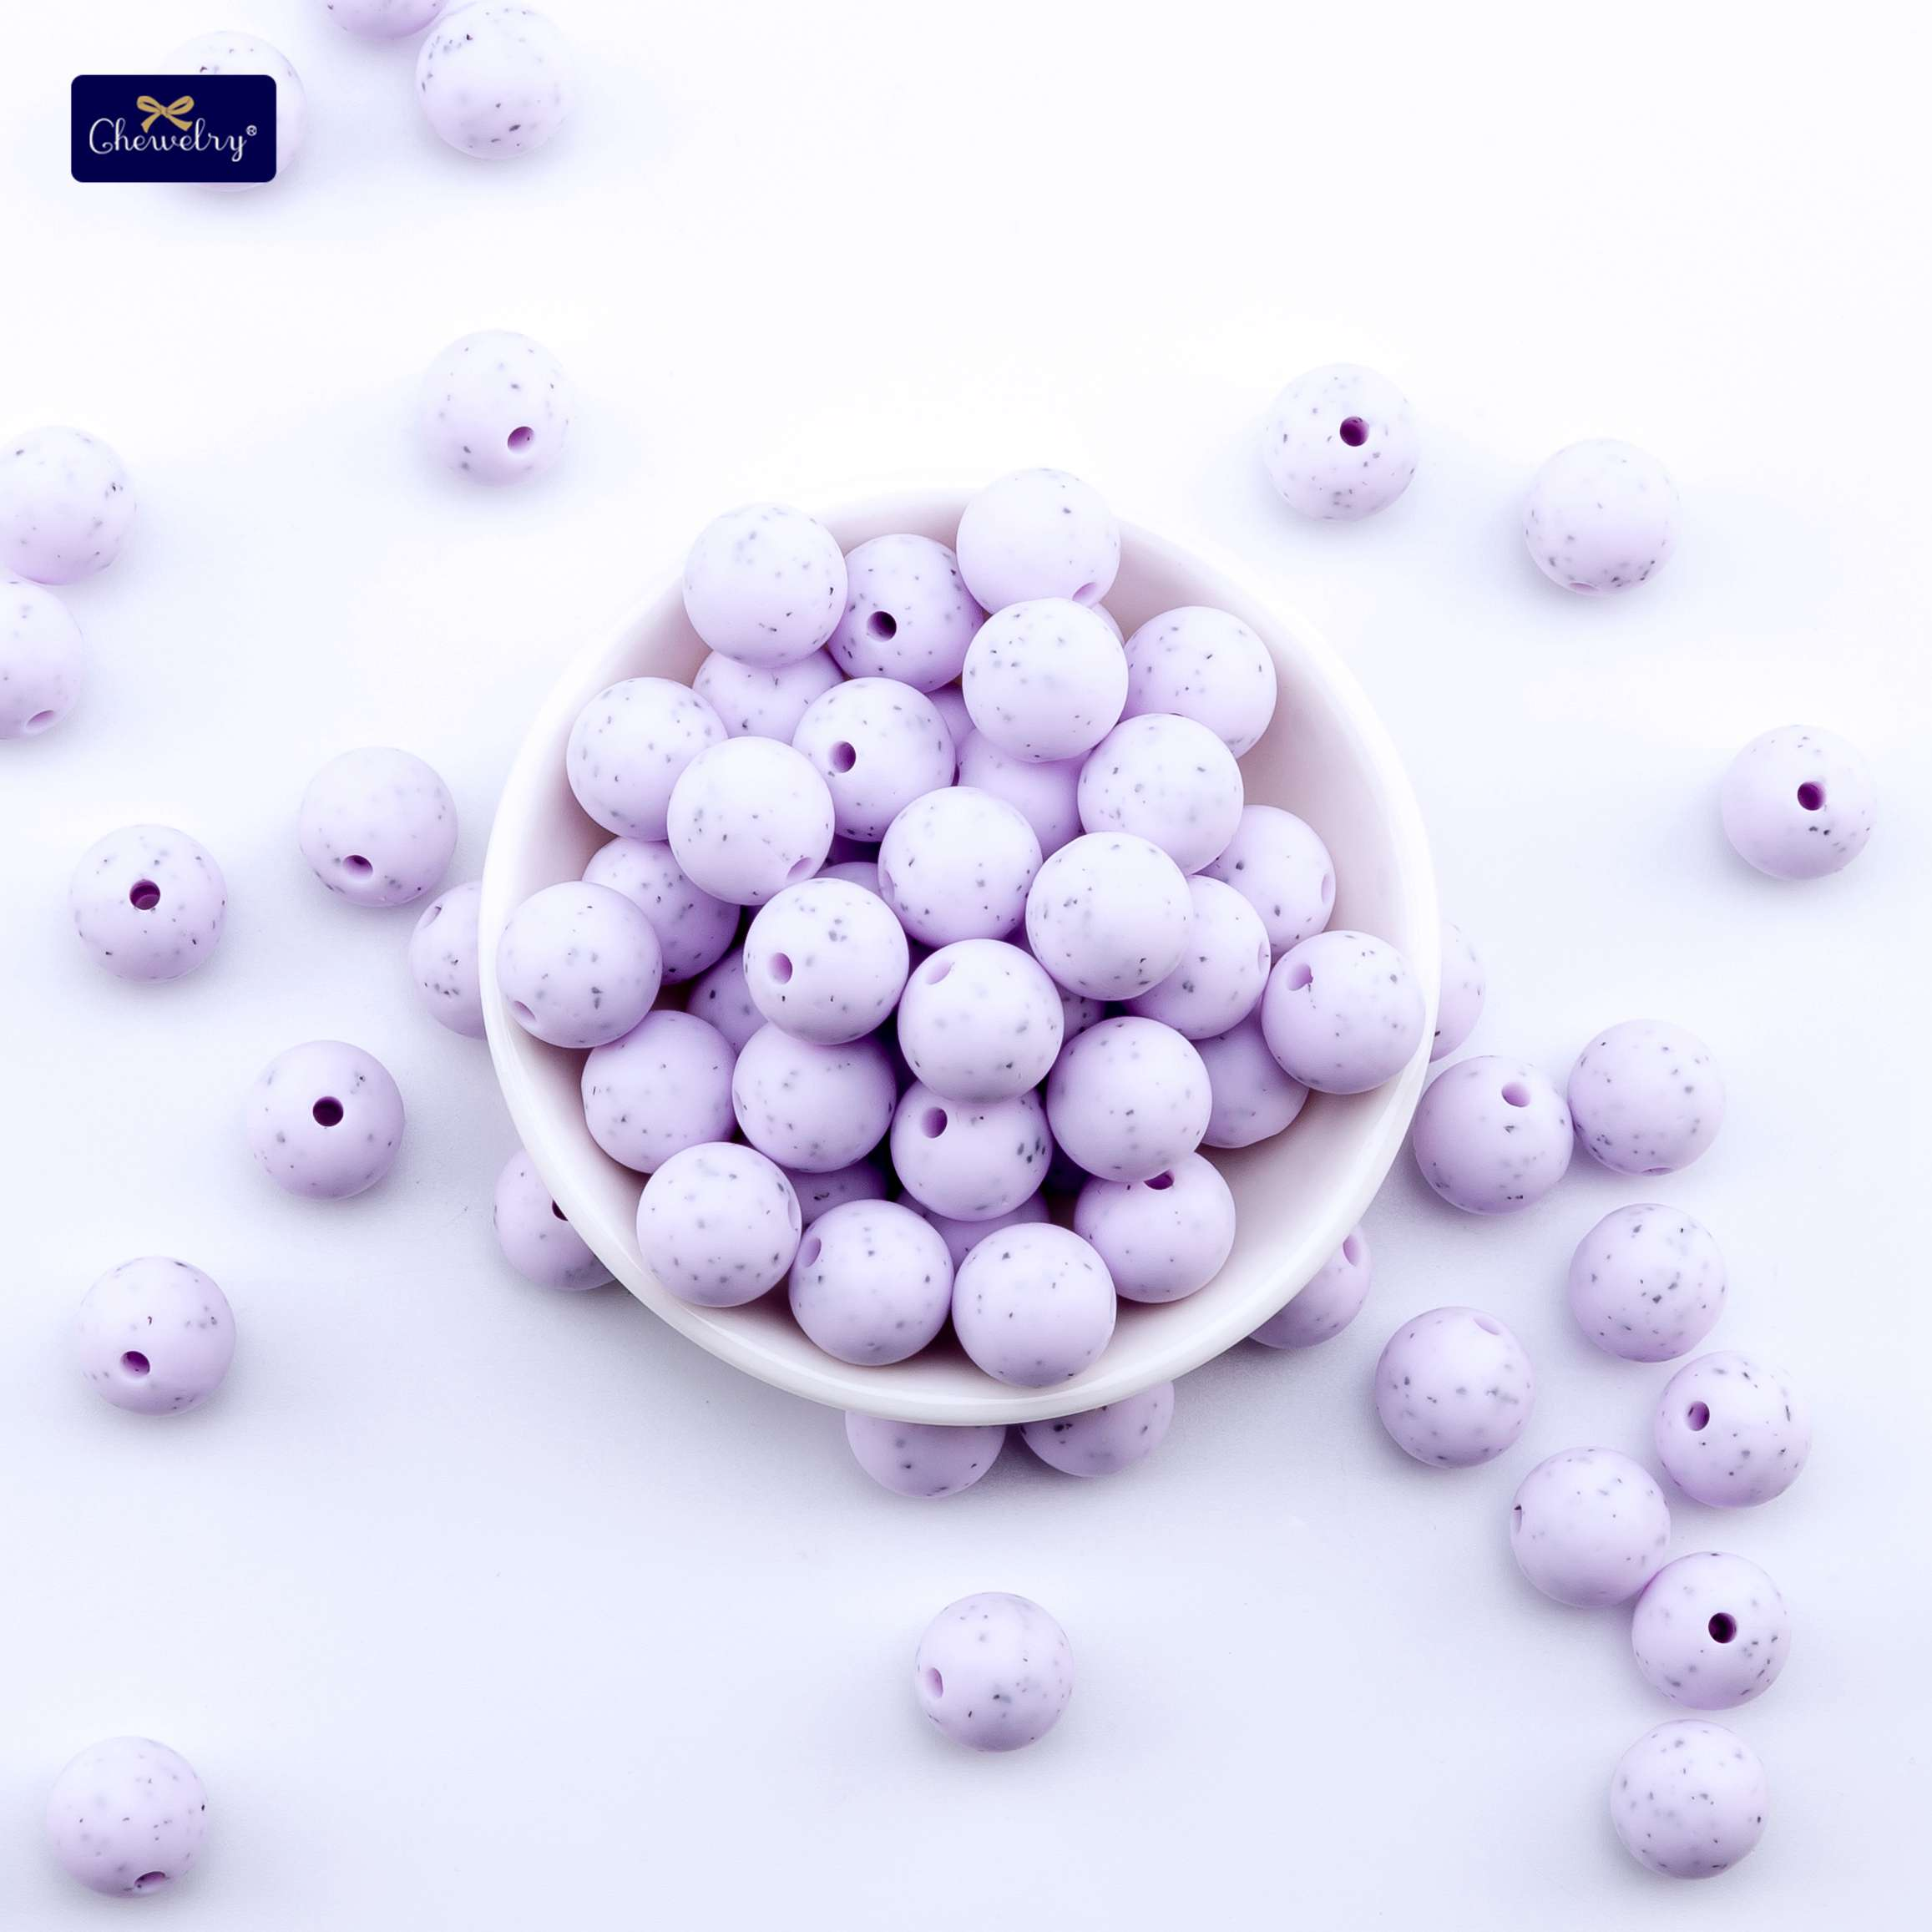 30pc 12mm Silicone Beads Teething Chew Round Sesame Beads Food Grade Baby Teether Necklace Perle Silicone DIY Pacifier Chain Toy